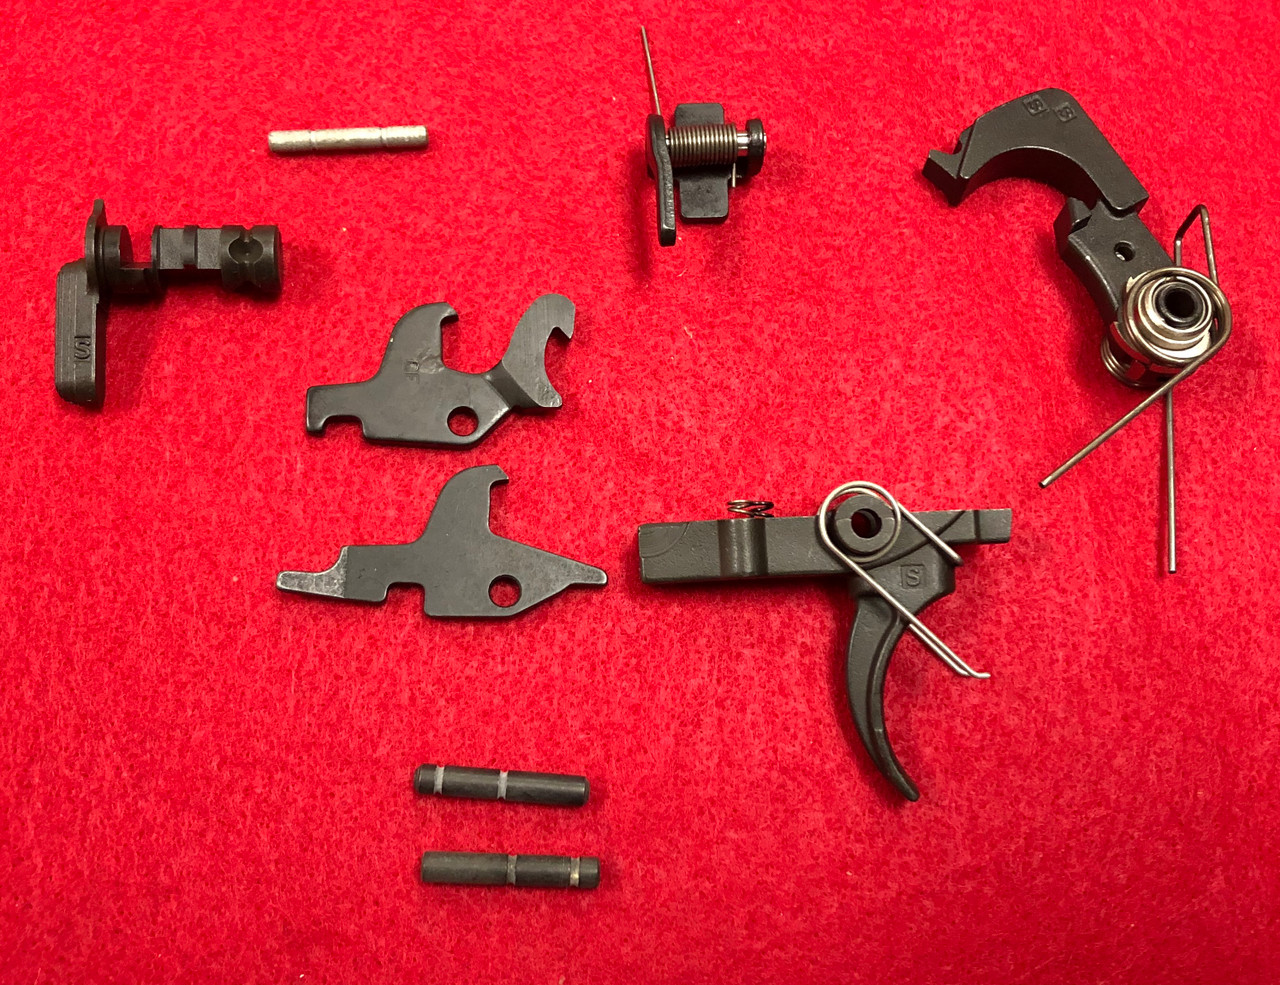 M16A2 3-Round Burst Fire Control Kit (RESTRICTED SALES - see details)